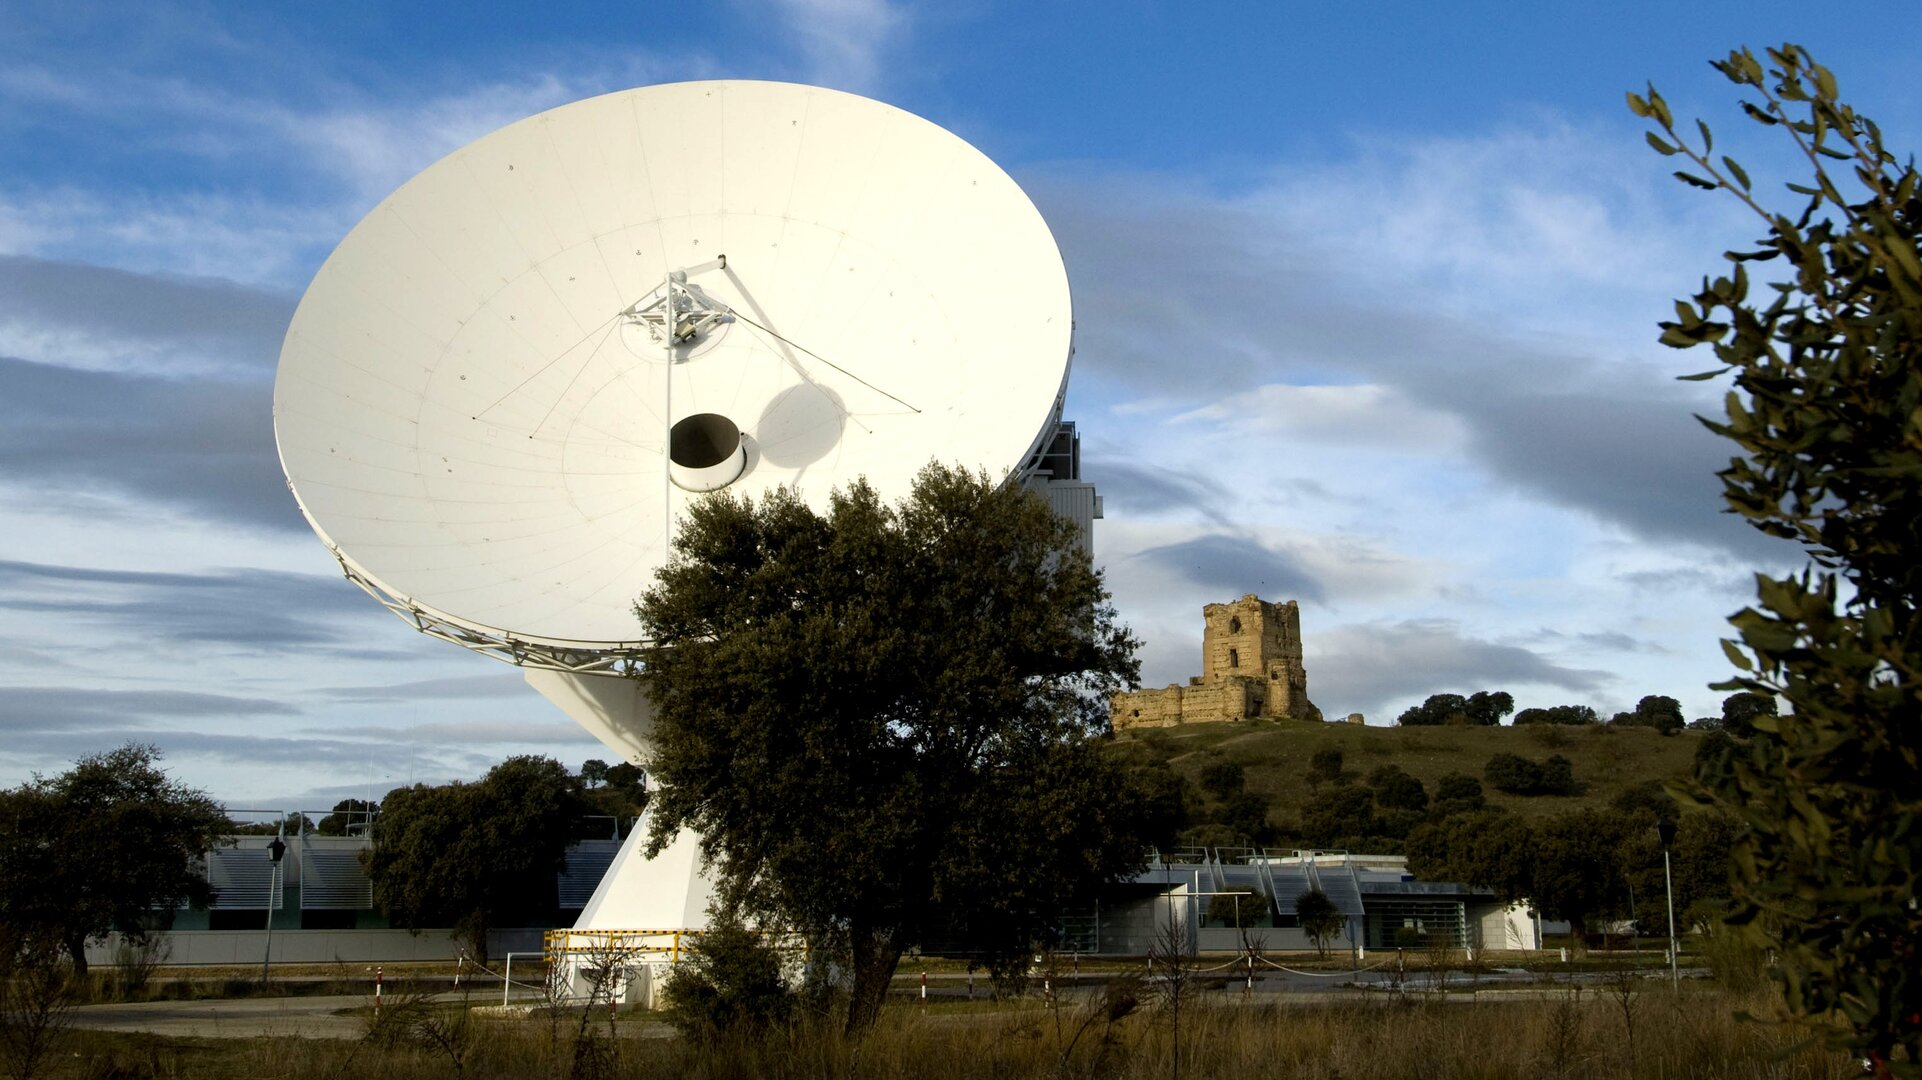 Villafranca station is located at the European Space Astronomy Centre (ESAC)